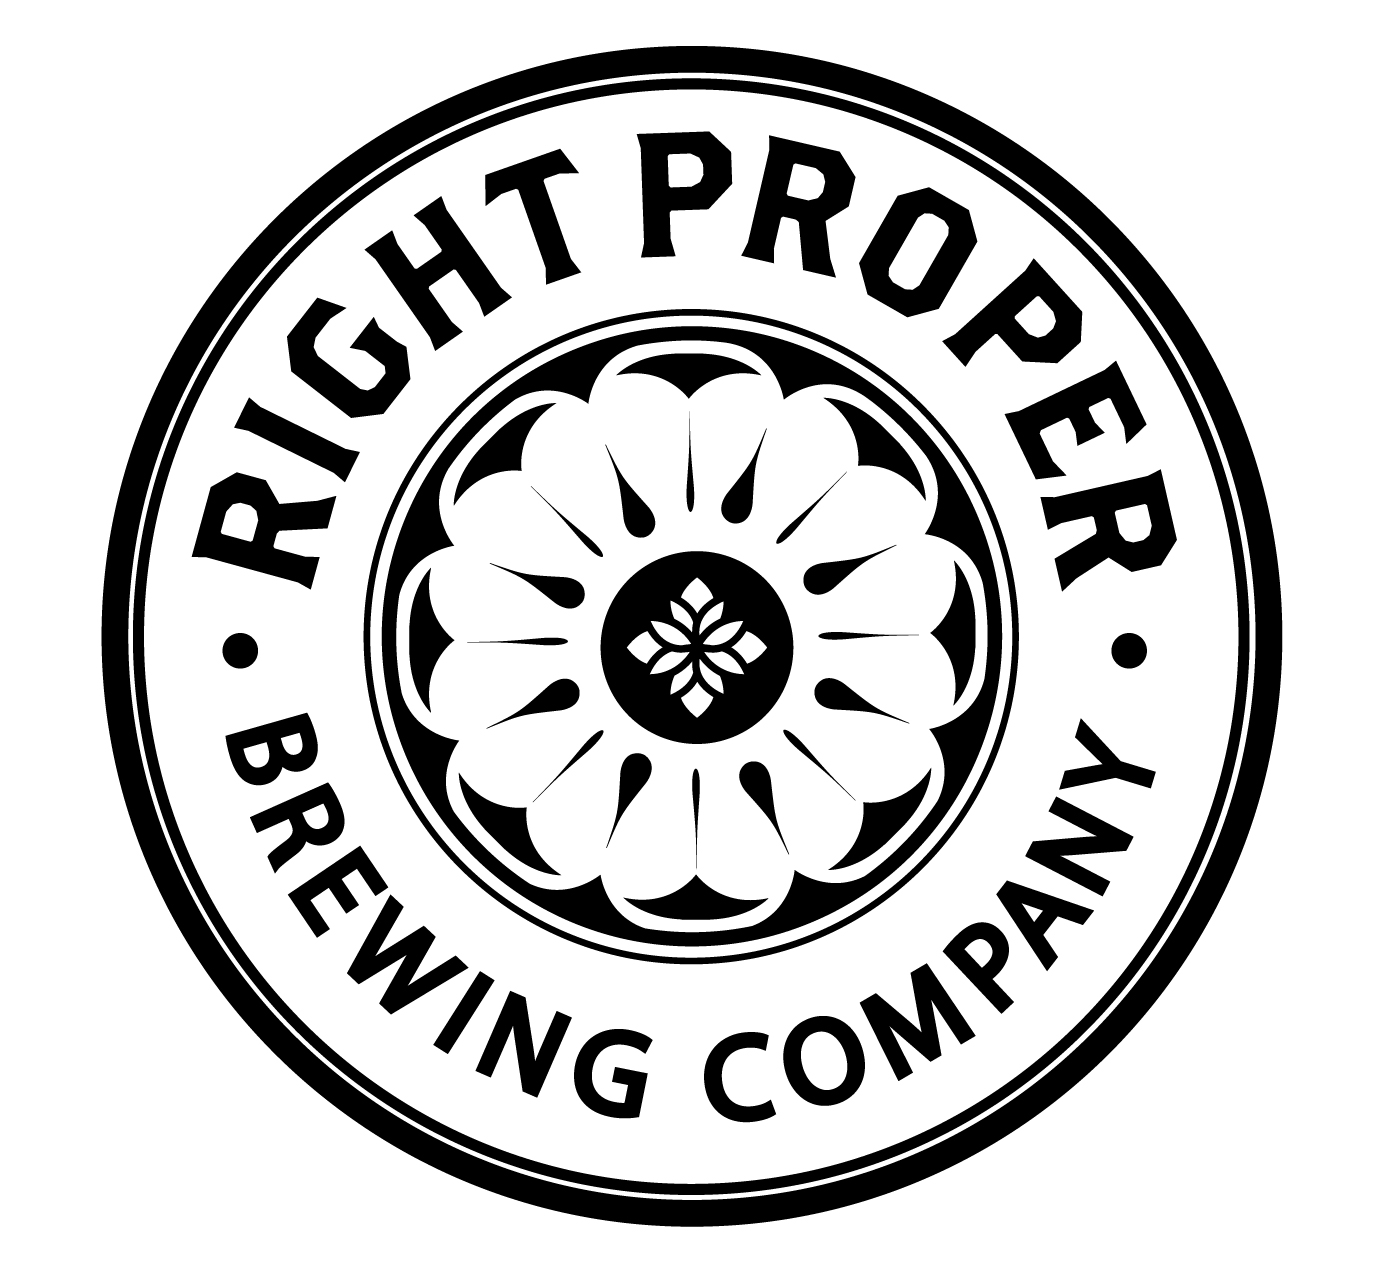 right_proper_brewing_company_logo_Rosette-Piping.jpg